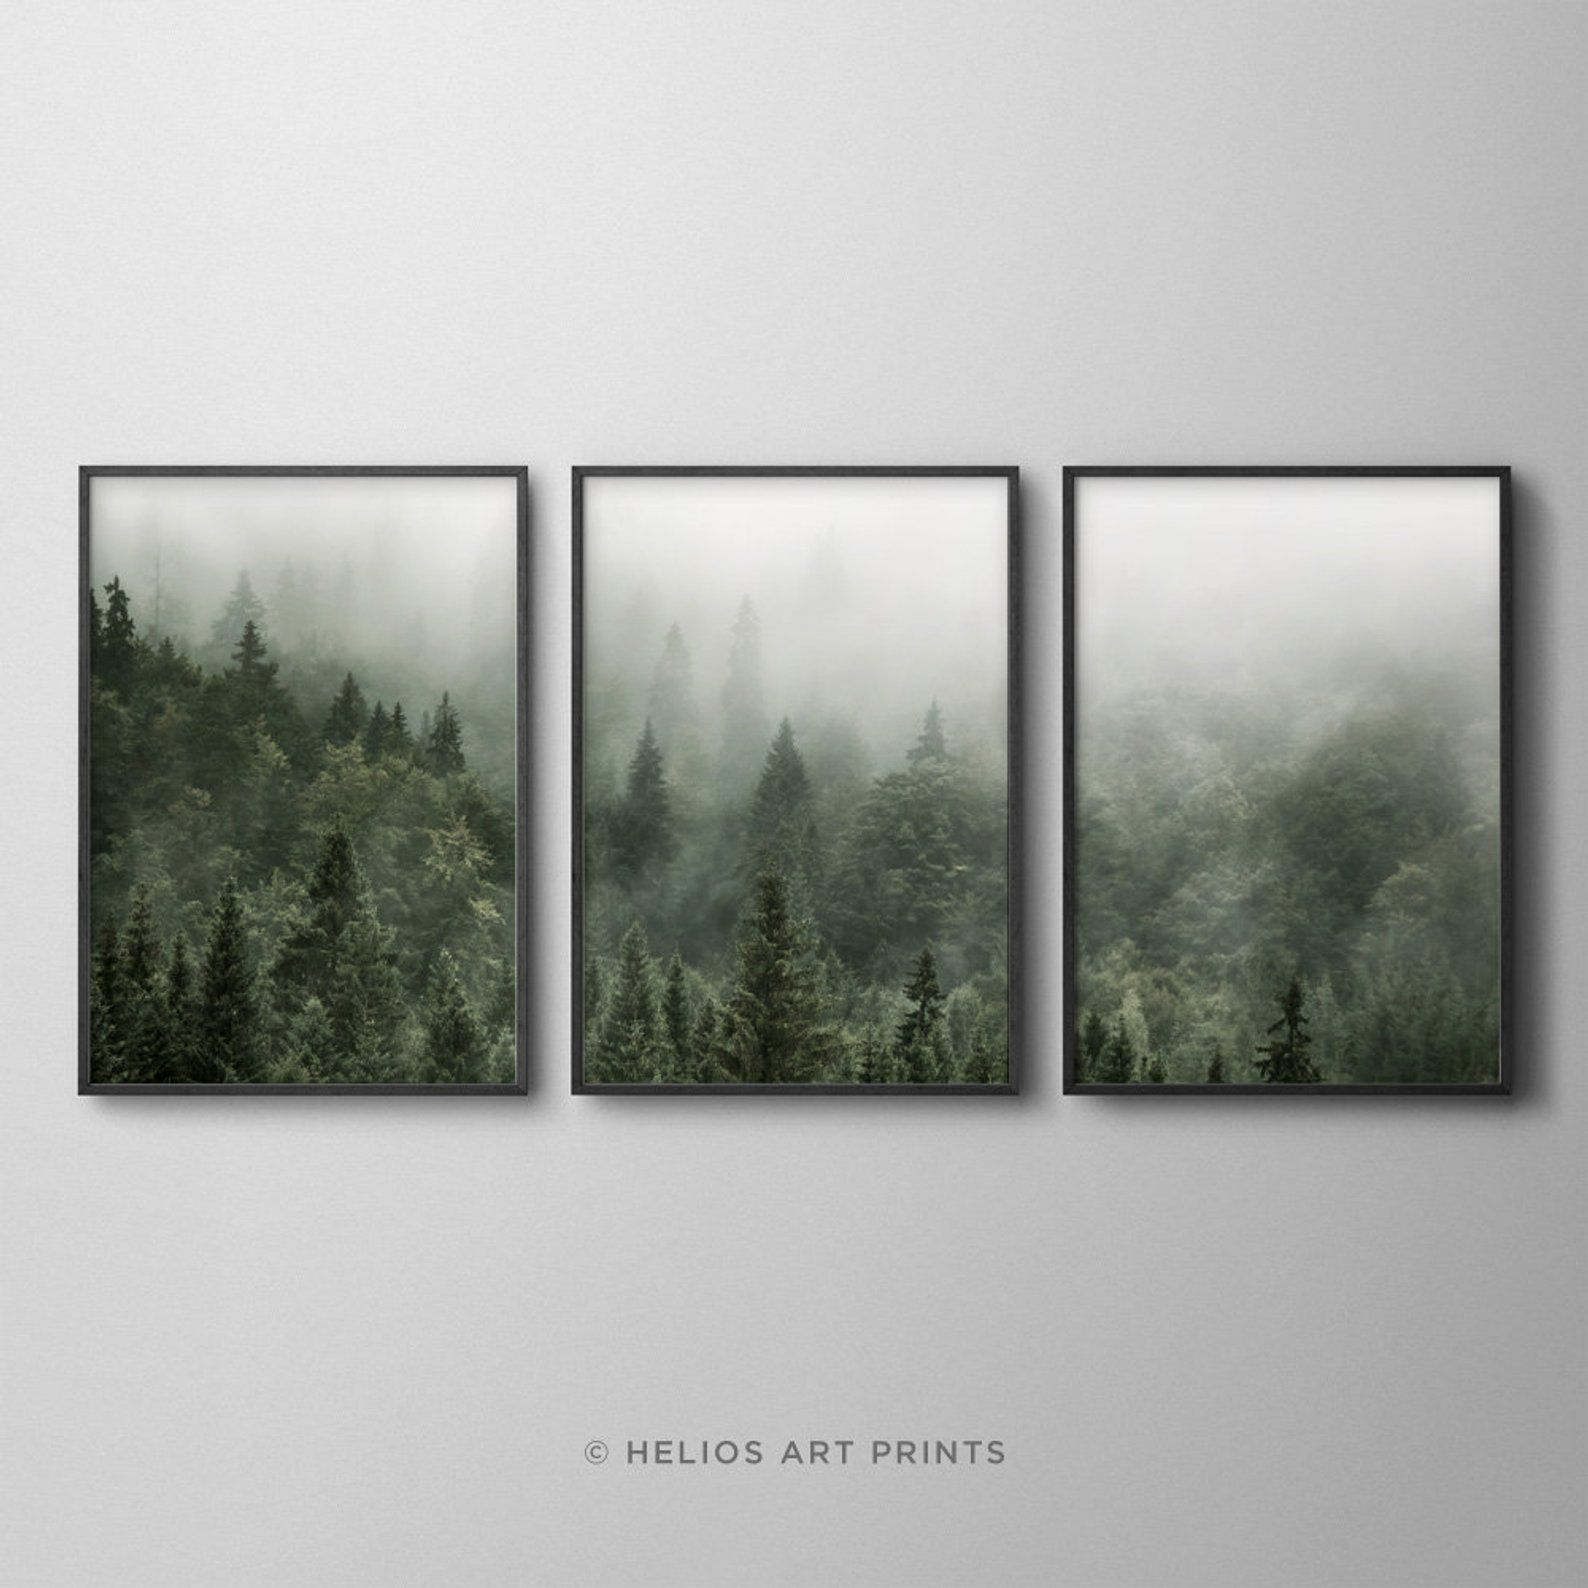 RED ABSTRACT TREES NATURE WALL ART POSTER A1 - A5 SIZES AVAILABLE